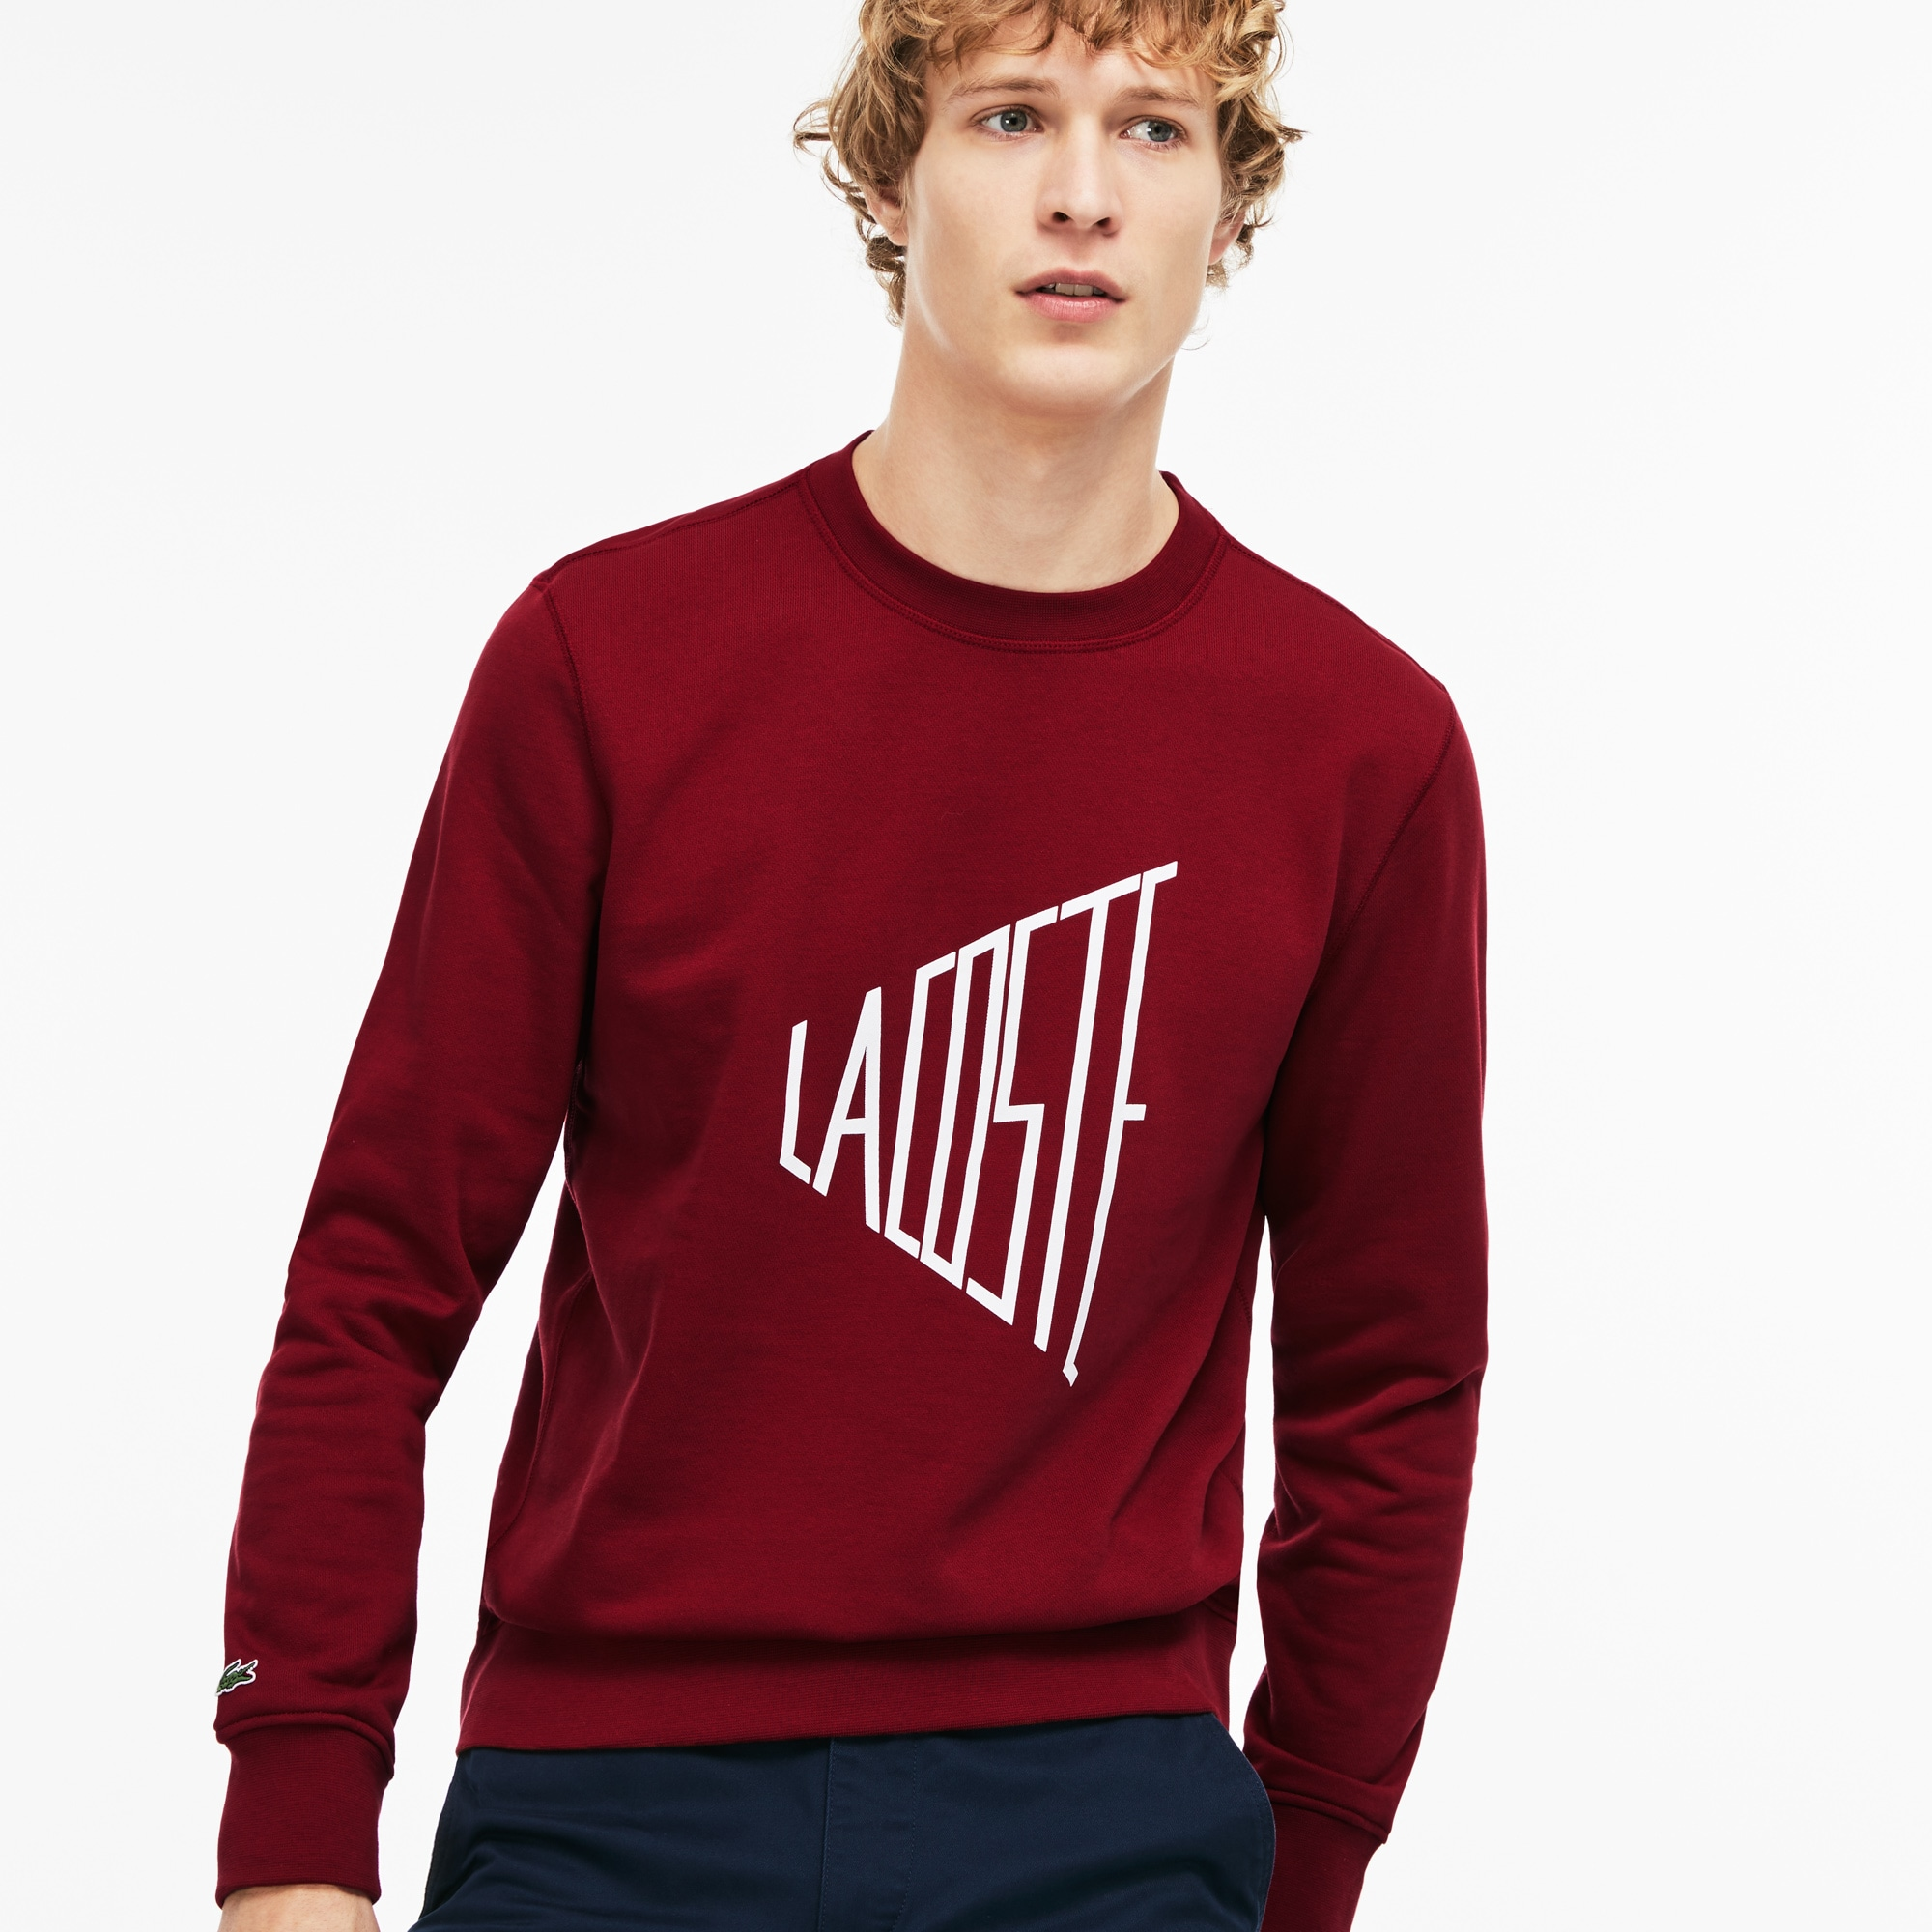 Men's Crew Neck Lacoste Lettering Fleece Sweatshirt